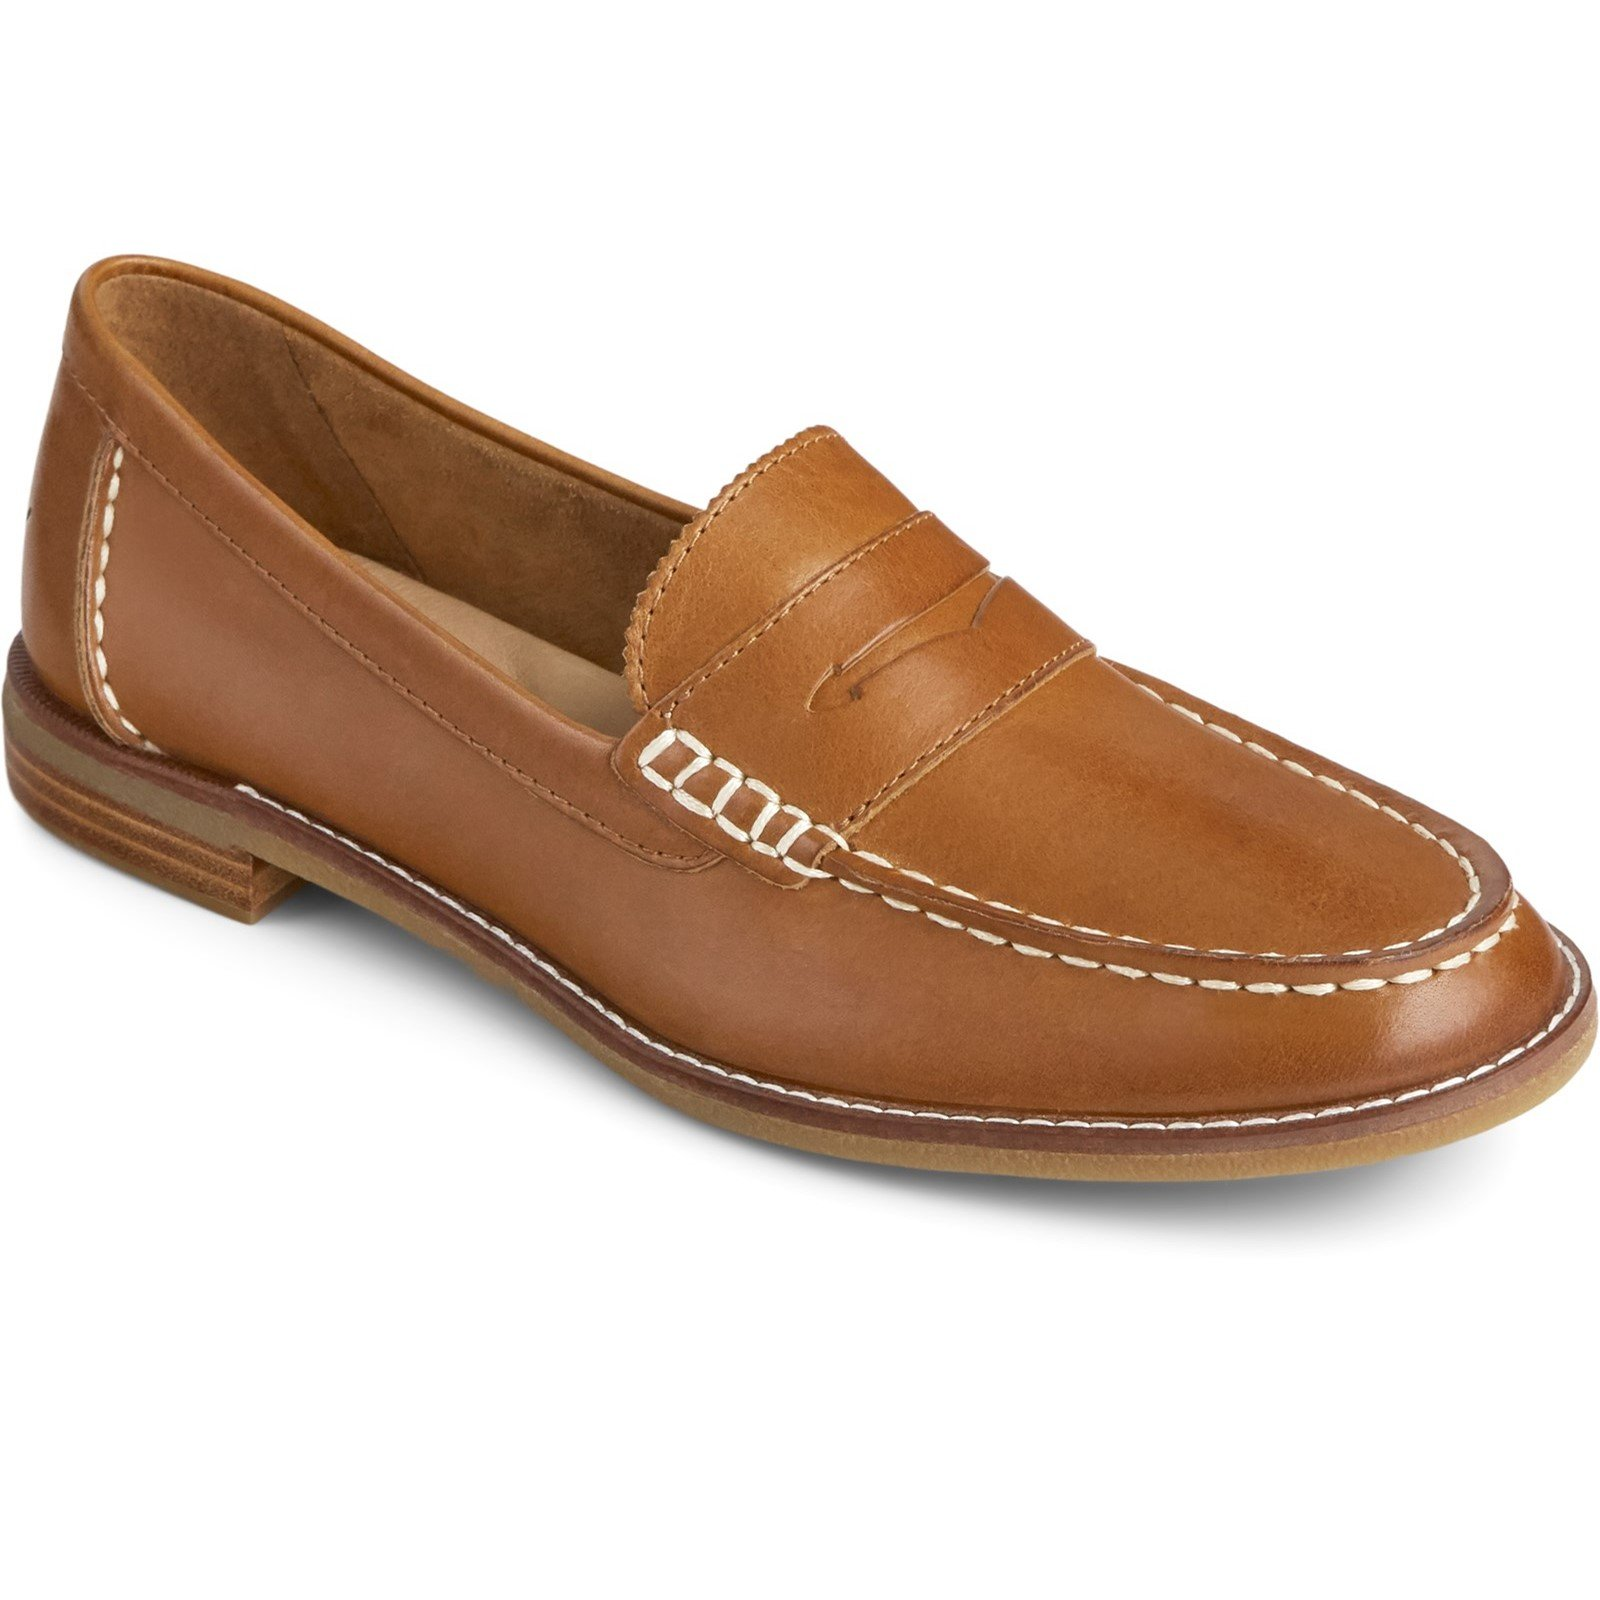 Sperry Women's Seaport Penny Loafer Various Colours 32403 - Tan 5